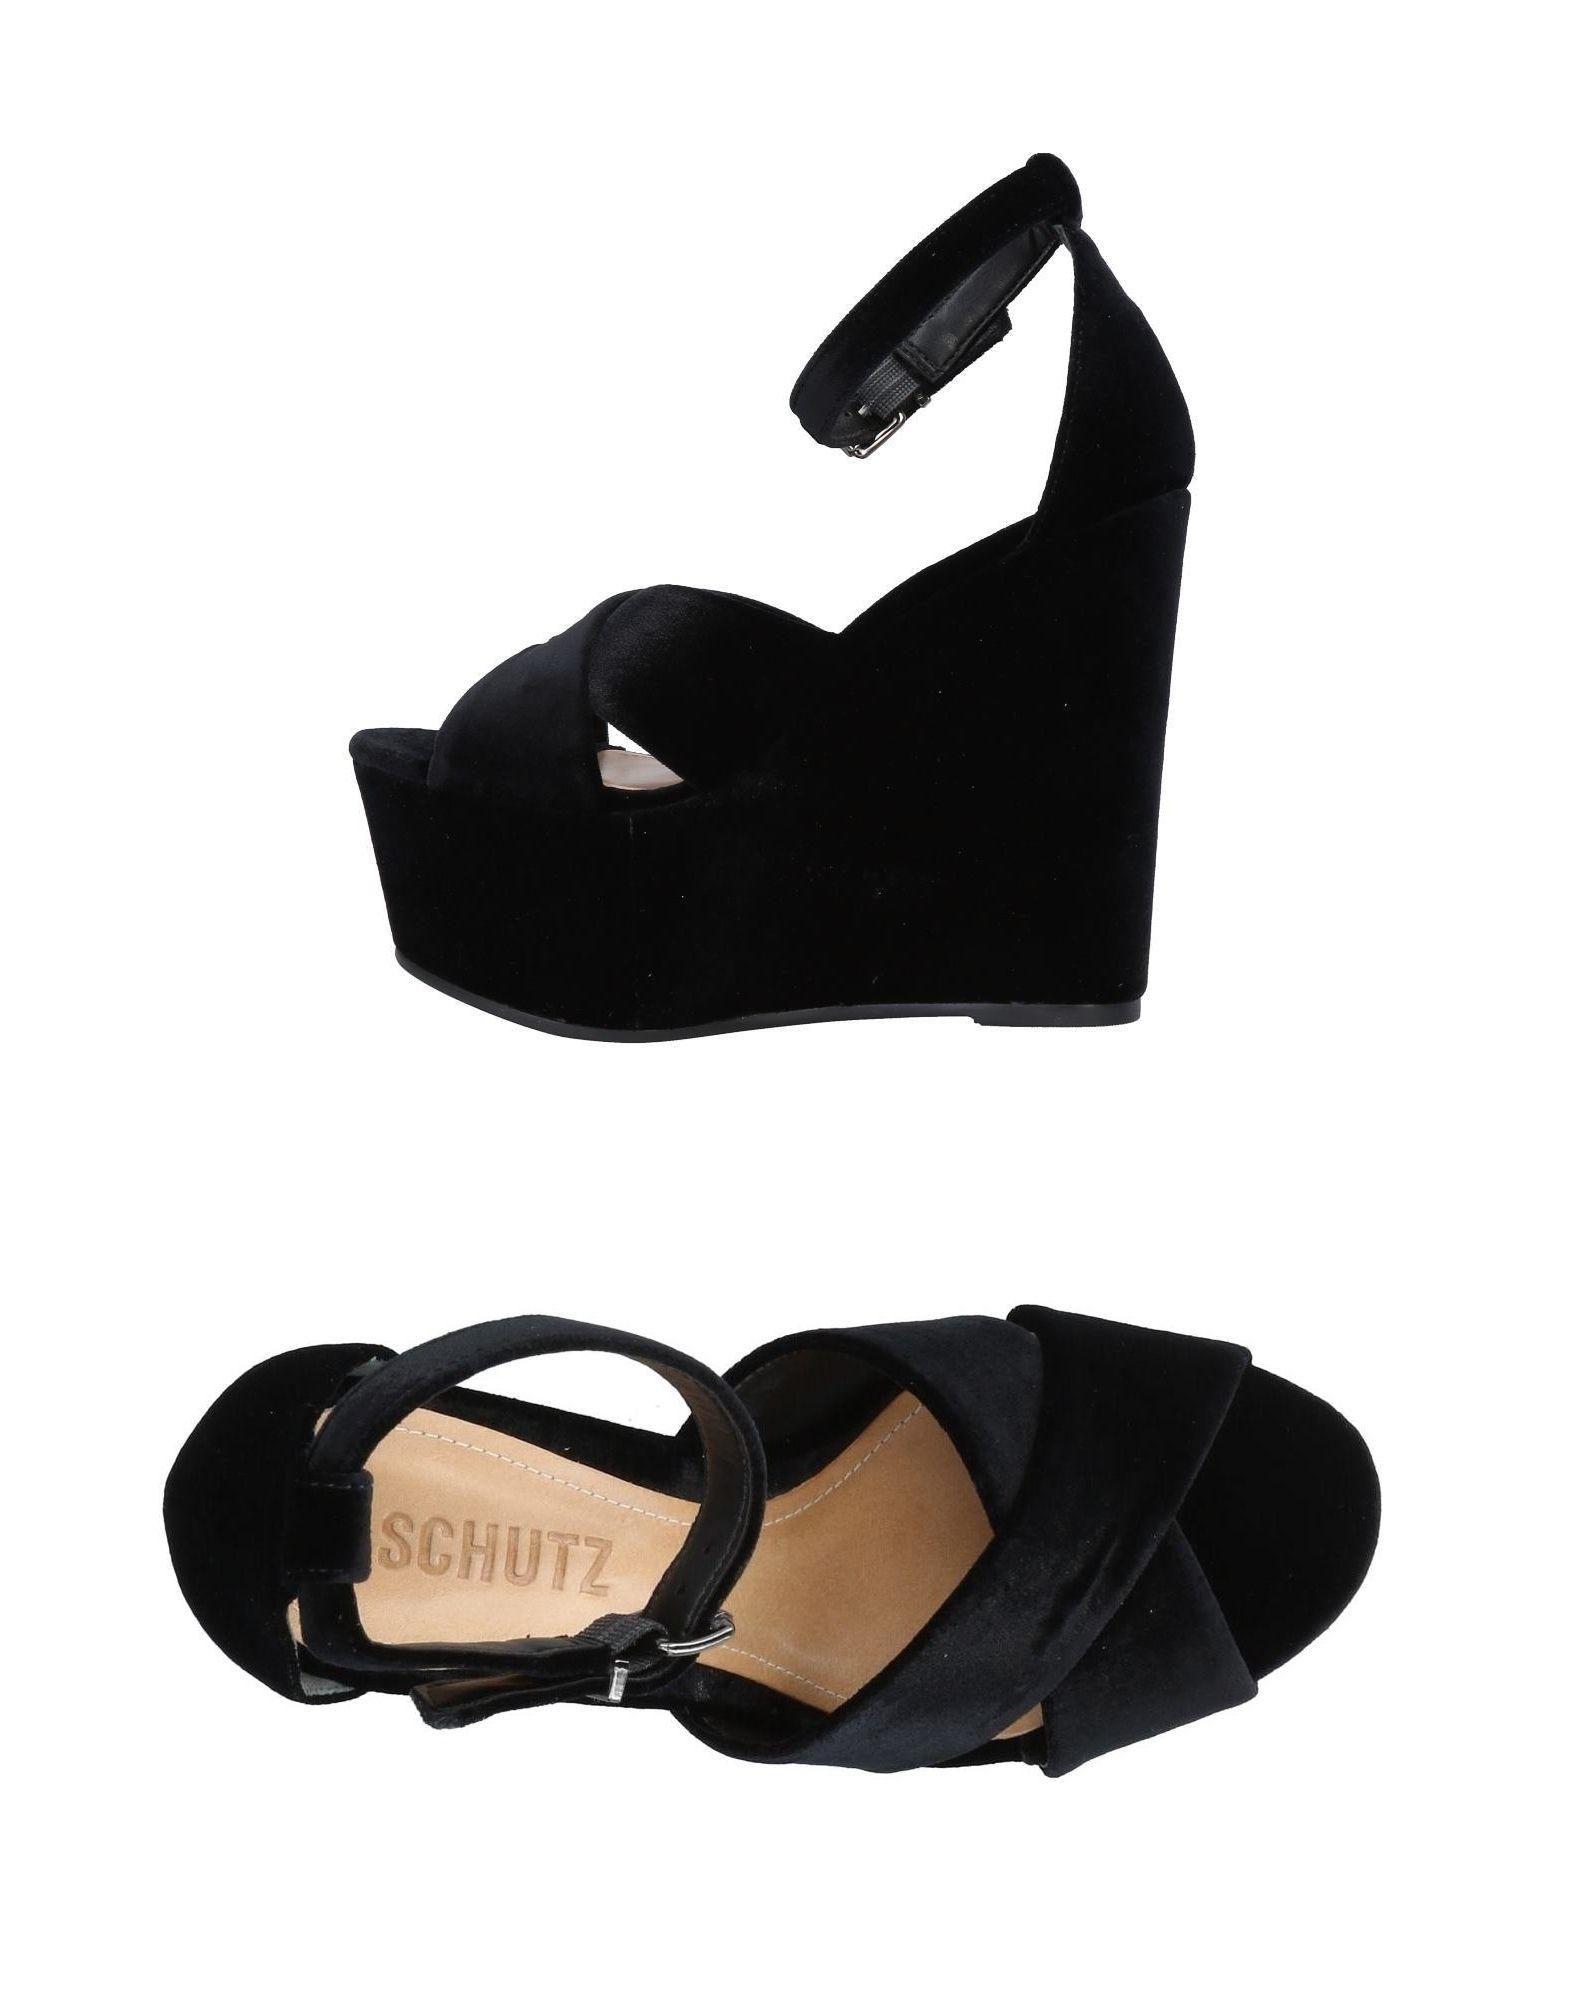 be46a47db153 Lyst - Schutz Sandals in Black